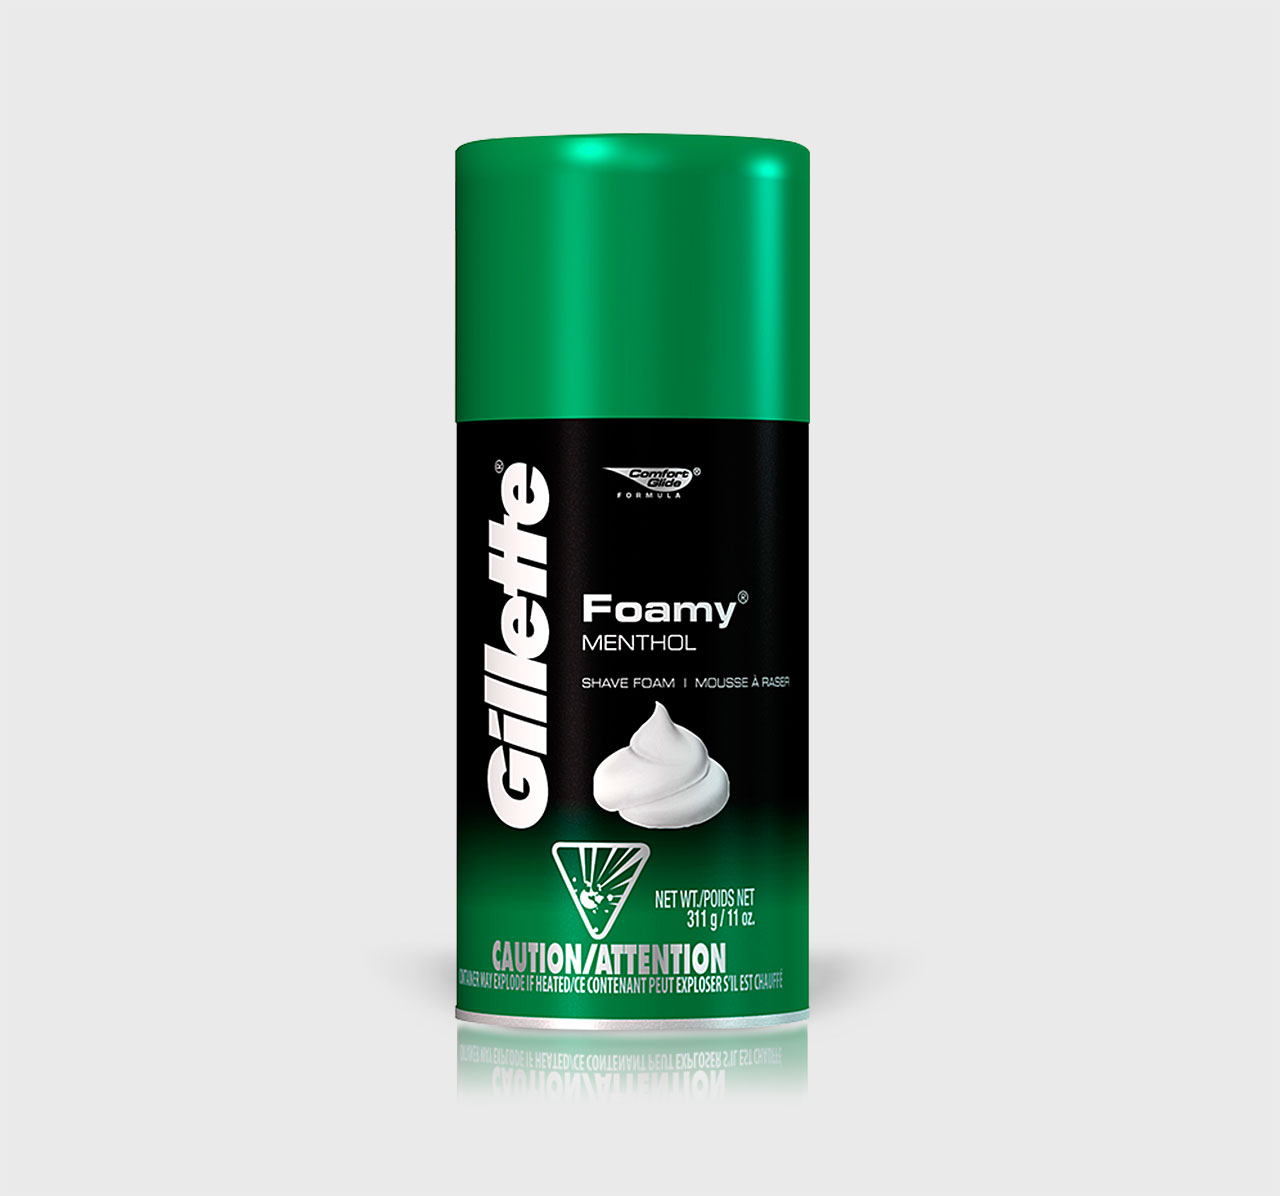 Gillette Foamy Menthol Shave Foam - 11 oz